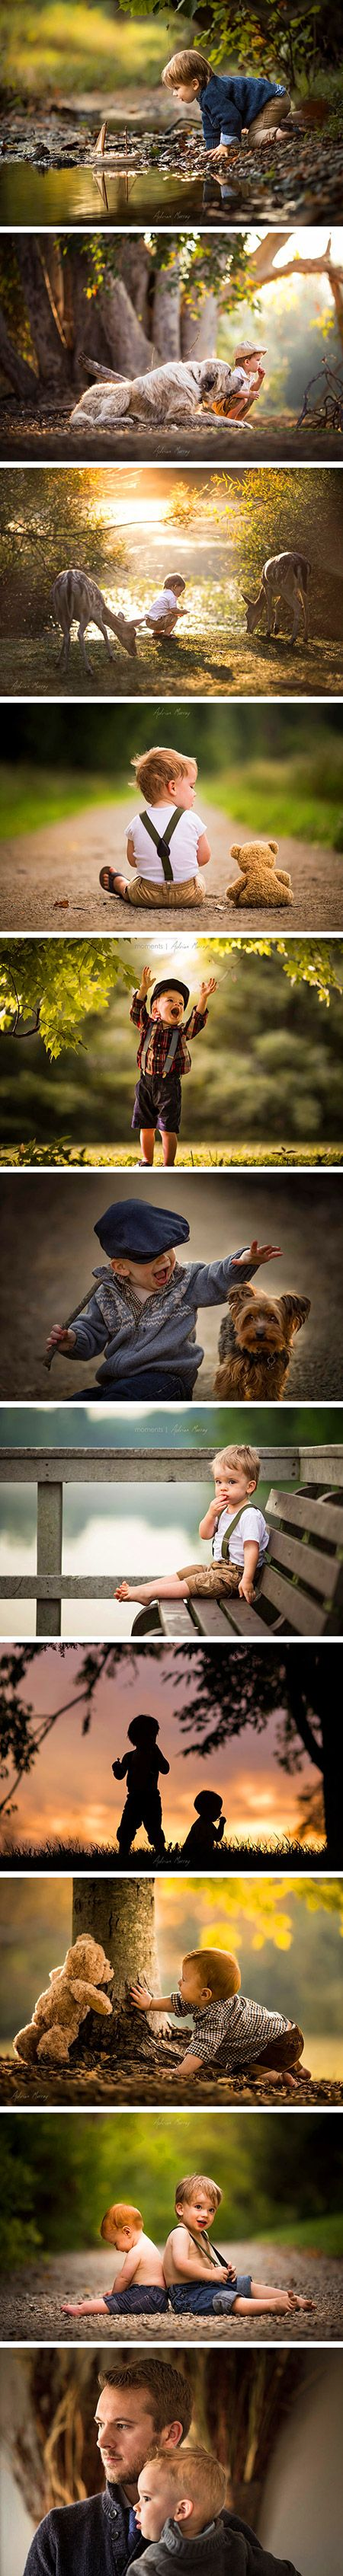 Following a health scare involving his son, Adrian Murray made it his mission to capture his children's beautiful childhood moments through his lens. Adrian Murray's beautiful portraits tell a story of childhood that all of us can relate to. His nostalgic point of view reminds us of our own childhoods and the storybooks we used to read while growing up.